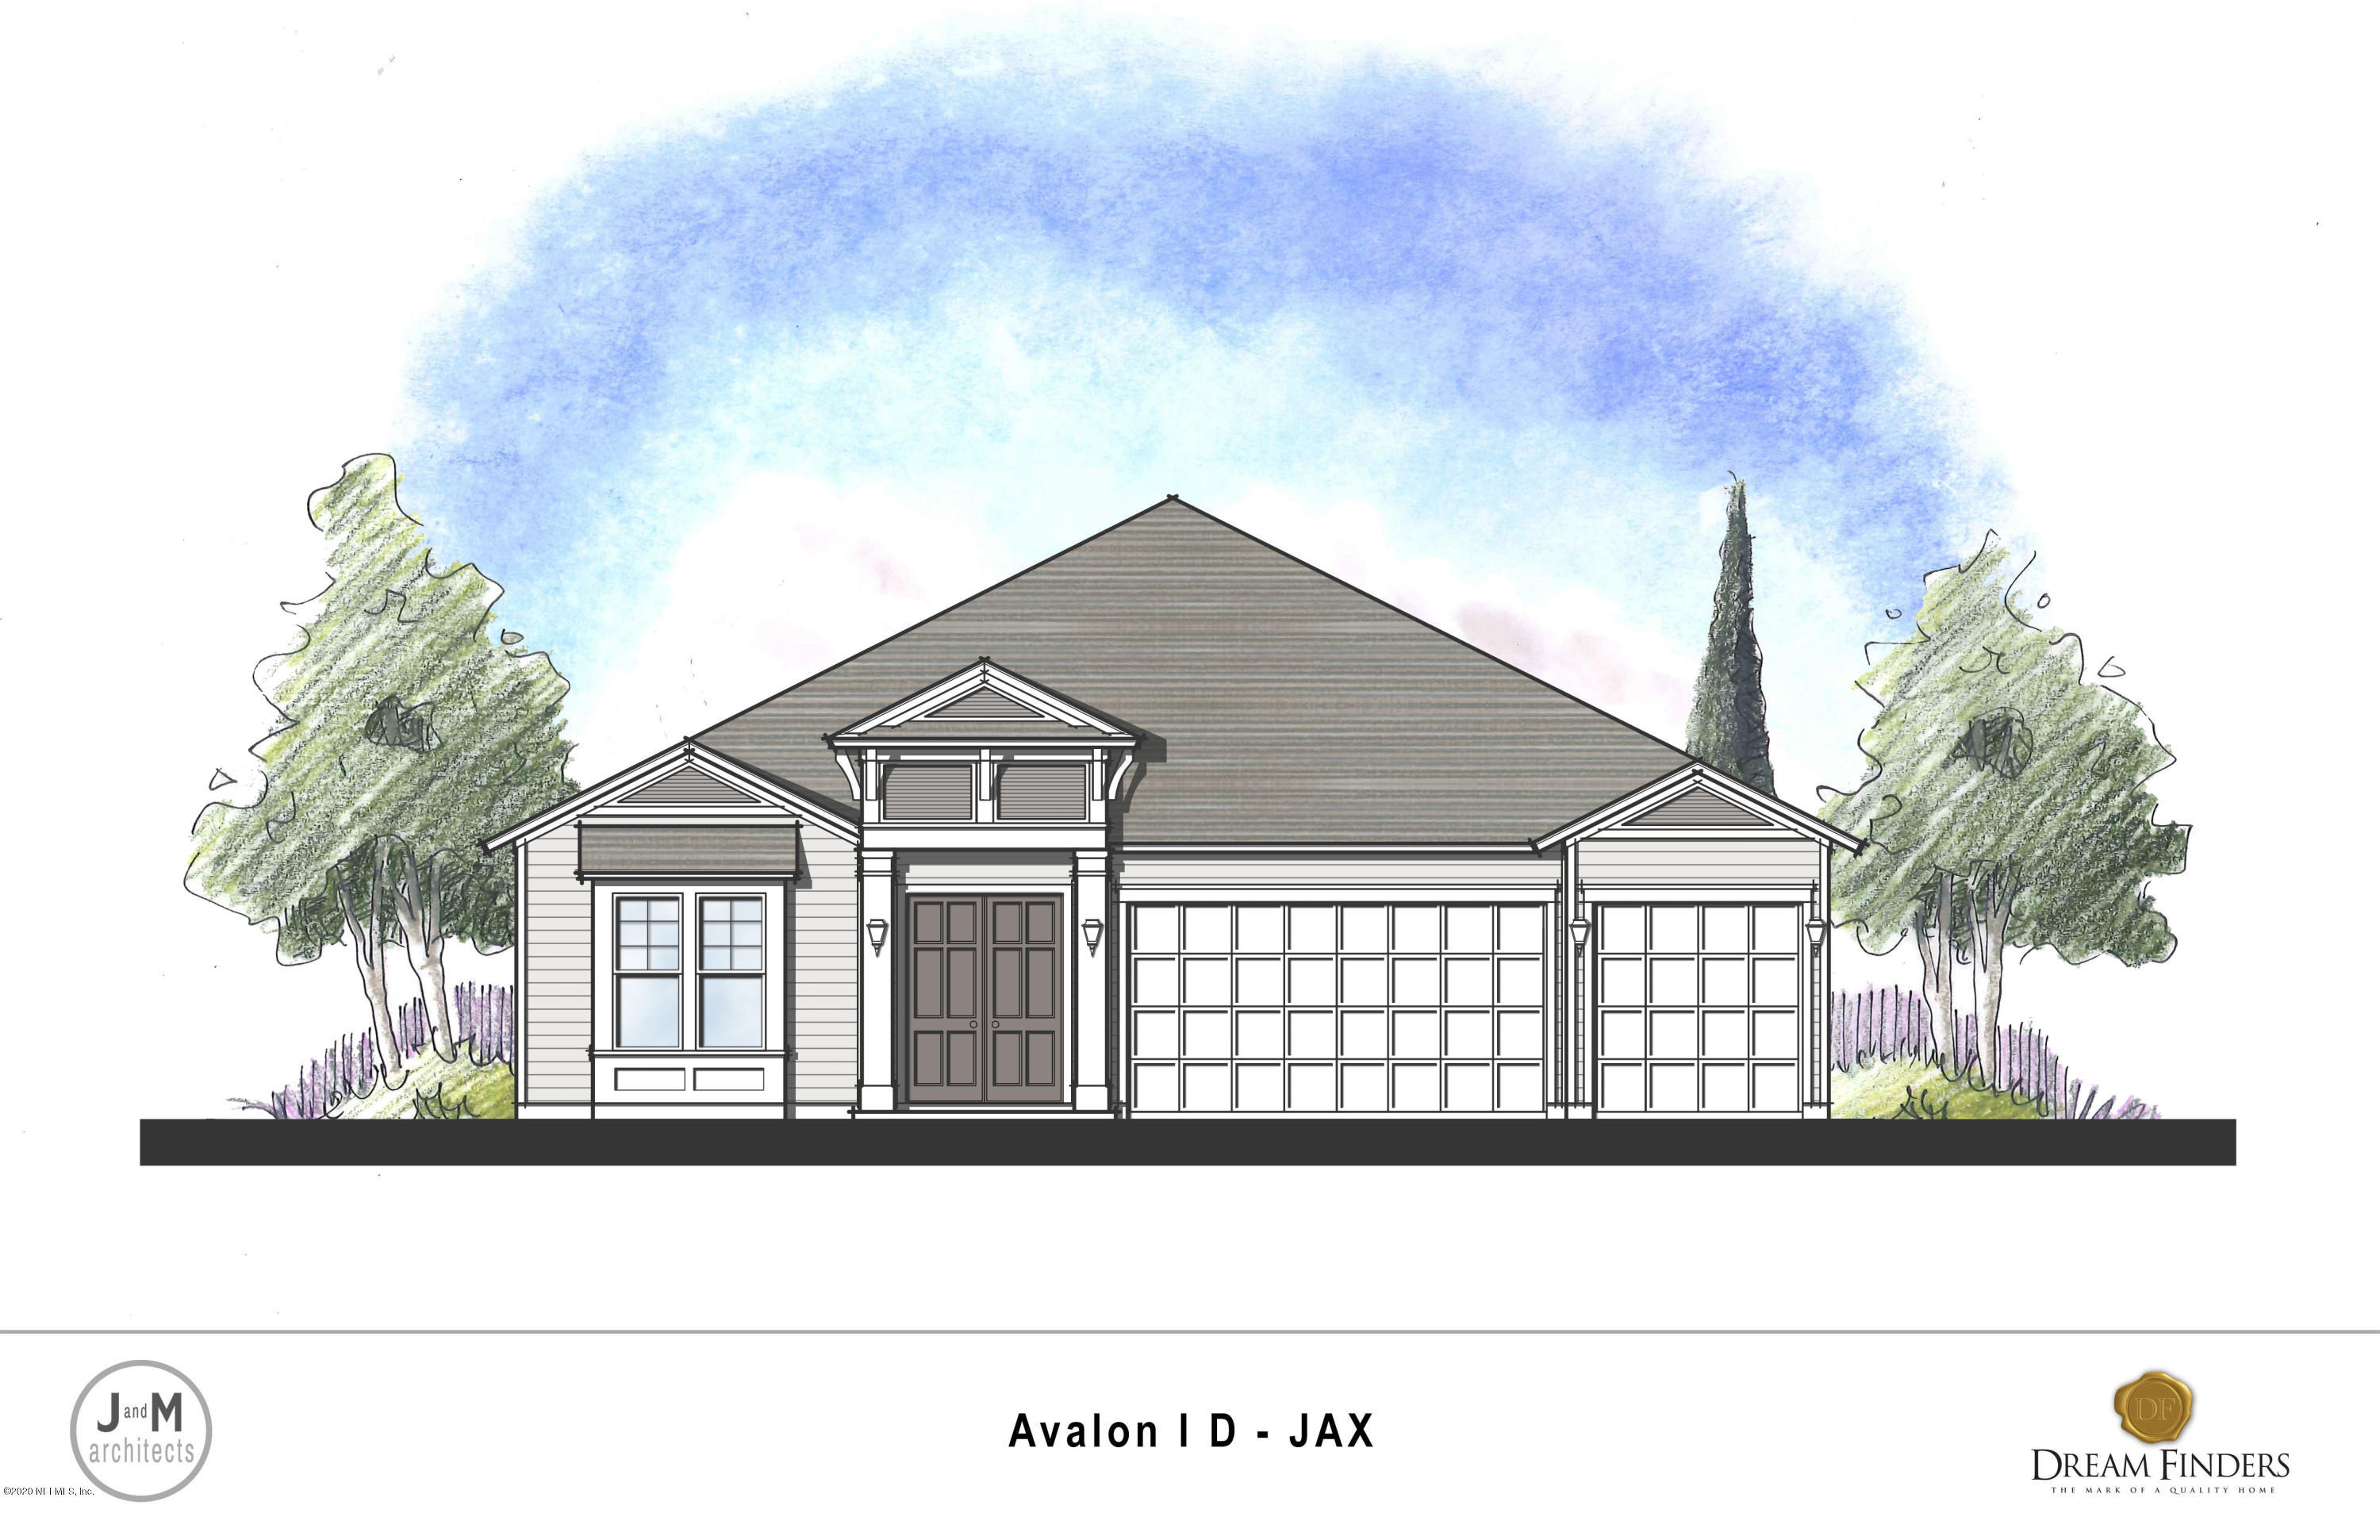 95376 ORCHID BLOSSOM, FERNANDINA BEACH, FLORIDA 32034, 4 Bedrooms Bedrooms, ,3 BathroomsBathrooms,Residential,For sale,ORCHID BLOSSOM,1057775